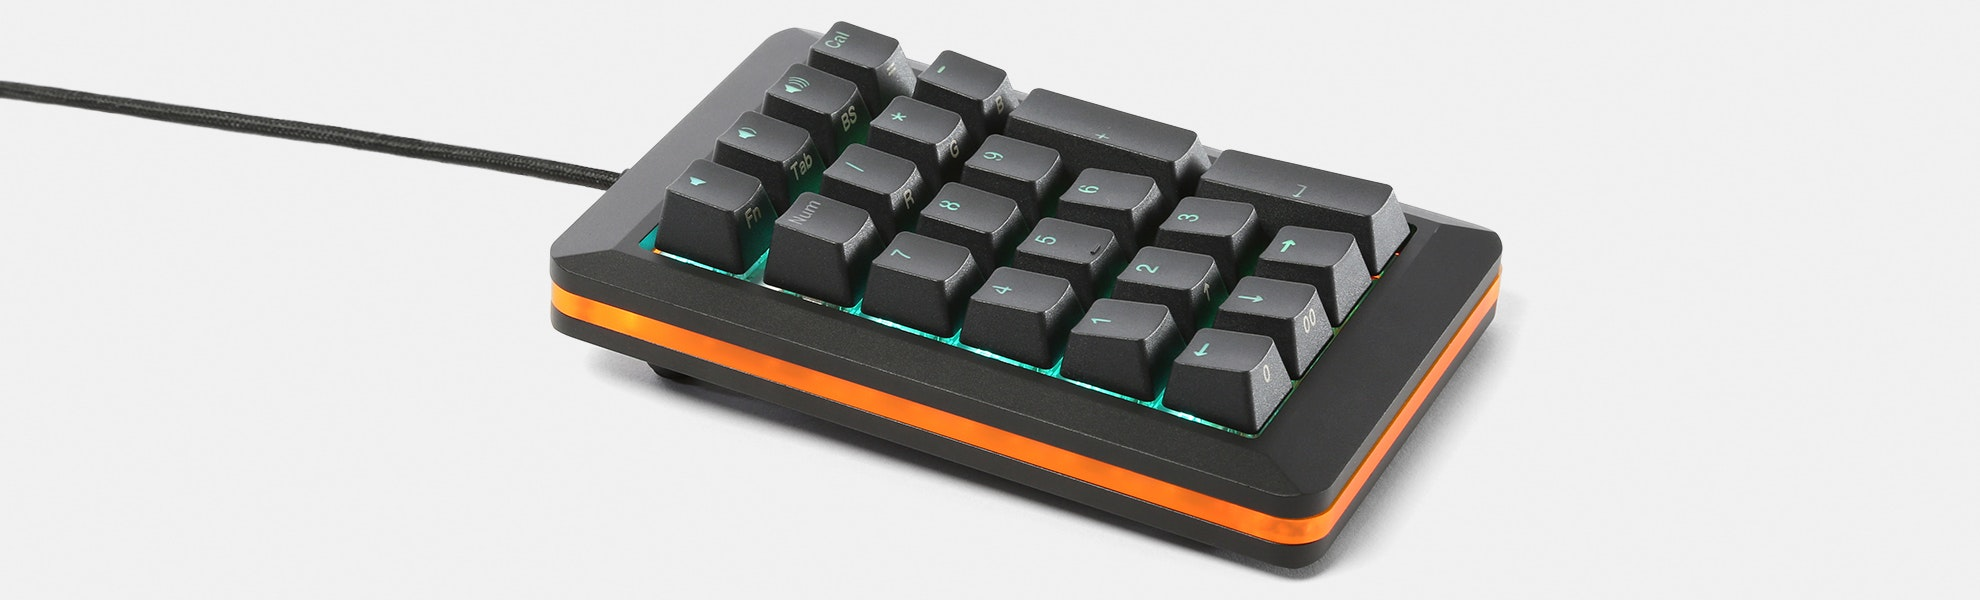 Mistel Freeboard MD200 RGB Mechanical Numpad